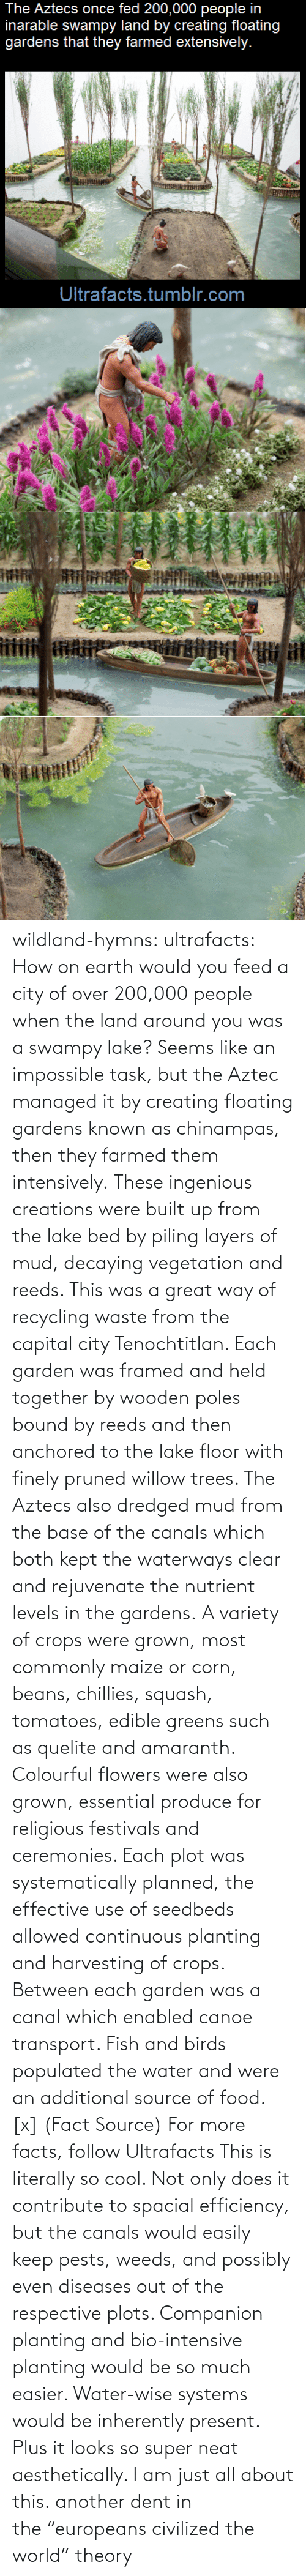 """Intensive: The Aztecs once fed 200,000 people in  inarable swampy land by creating floating  gardens that they farmed extensively.  Ultrafacts.tumblr.com wildland-hymns:  ultrafacts:  How on earth would you feed a city of over 200,000 people when the land around you was a swampy lake? Seems like an impossible task, but the Aztec managed it by creating floating gardens known as chinampas, then they farmed them intensively. These ingenious creations were built up from the lake bed by piling layers of mud, decaying vegetation and reeds. This was a great way of recycling waste from the capital city Tenochtitlan. Each garden was framed and held together by wooden poles bound by reeds and then anchored to the lake floor with finely pruned willow trees. The Aztecs also dredged mud from the base of the canals which both kept the waterways clear and rejuvenate the nutrient levels in the gardens. A variety of crops were grown, most commonly maize or corn, beans, chillies, squash, tomatoes, edible greens such as quelite and amaranth. Colourful flowers were also grown, essential produce for religious festivals and ceremonies. Each plot was systematically planned, the effective use of seedbeds allowed continuous planting and harvesting of crops. Between each garden was a canal which enabled canoe transport. Fish and birds populated the water and were an additional source of food. [x] (Fact Source) For more facts, follow Ultrafacts   This is literally so cool. Not only does it contribute to spacial efficiency, but the canals would easily keep pests, weeds, and possibly even diseases out of the respective plots. Companion planting and bio-intensive planting would be so much easier. Water-wise systems would be inherently present. Plus it looks so super neat aesthetically. I am just all about this.   another dent in the""""europeans civilized the world"""" theory"""